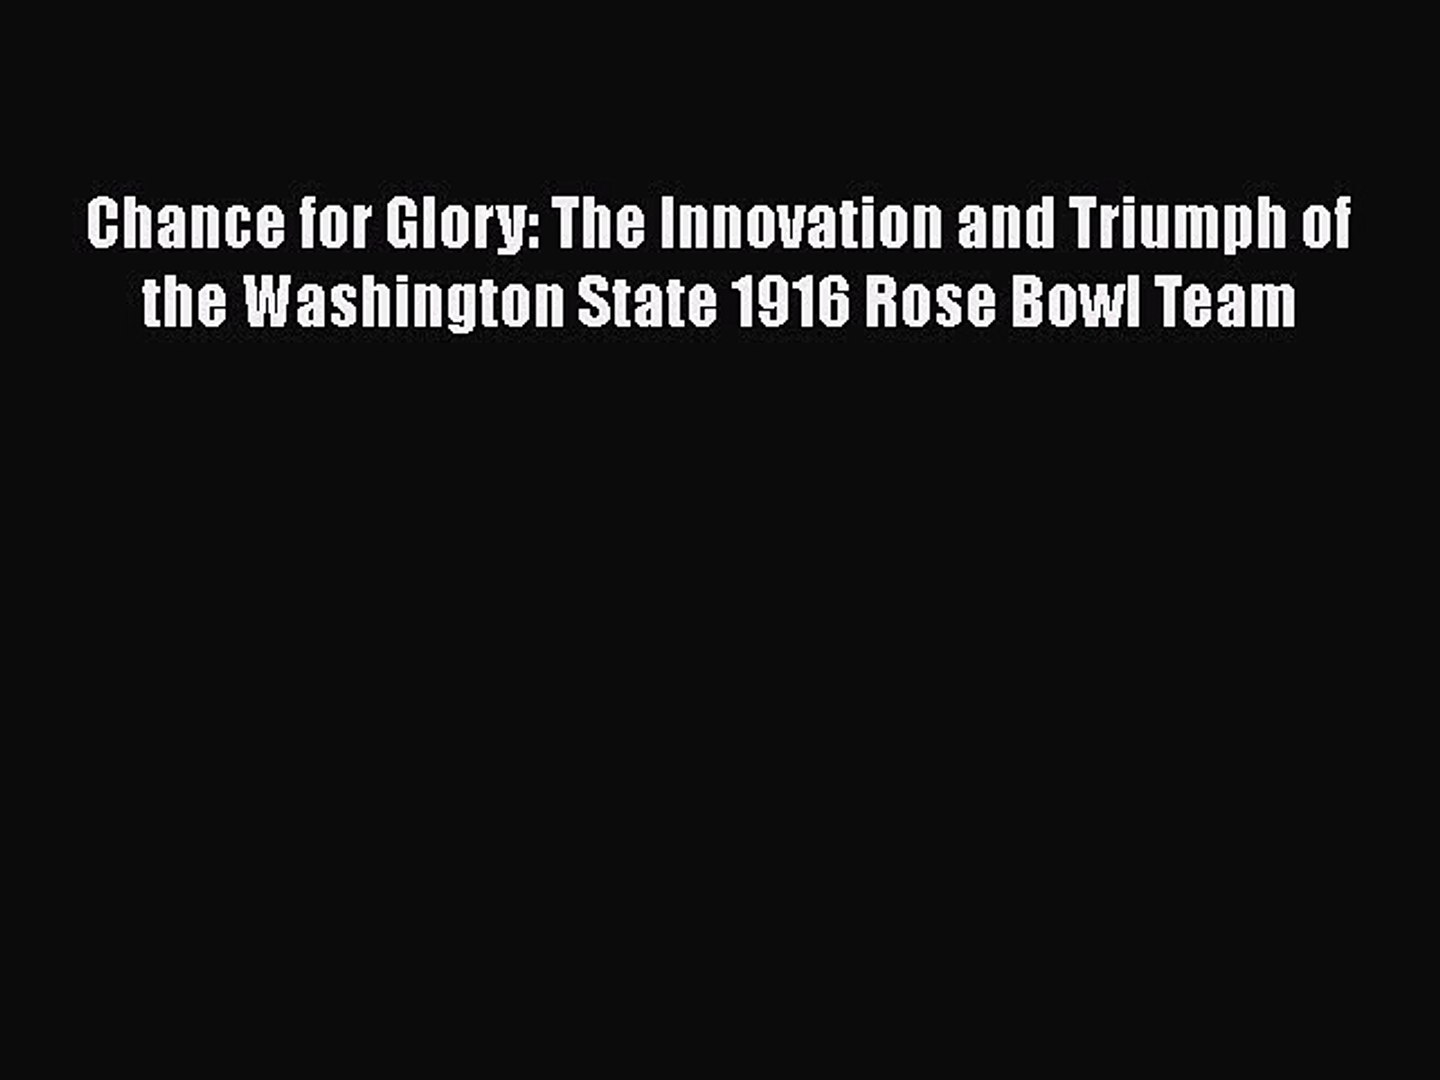 [Read Book] Chance for Glory: The Innovation and Triumph of the Washington State 1916 Rose